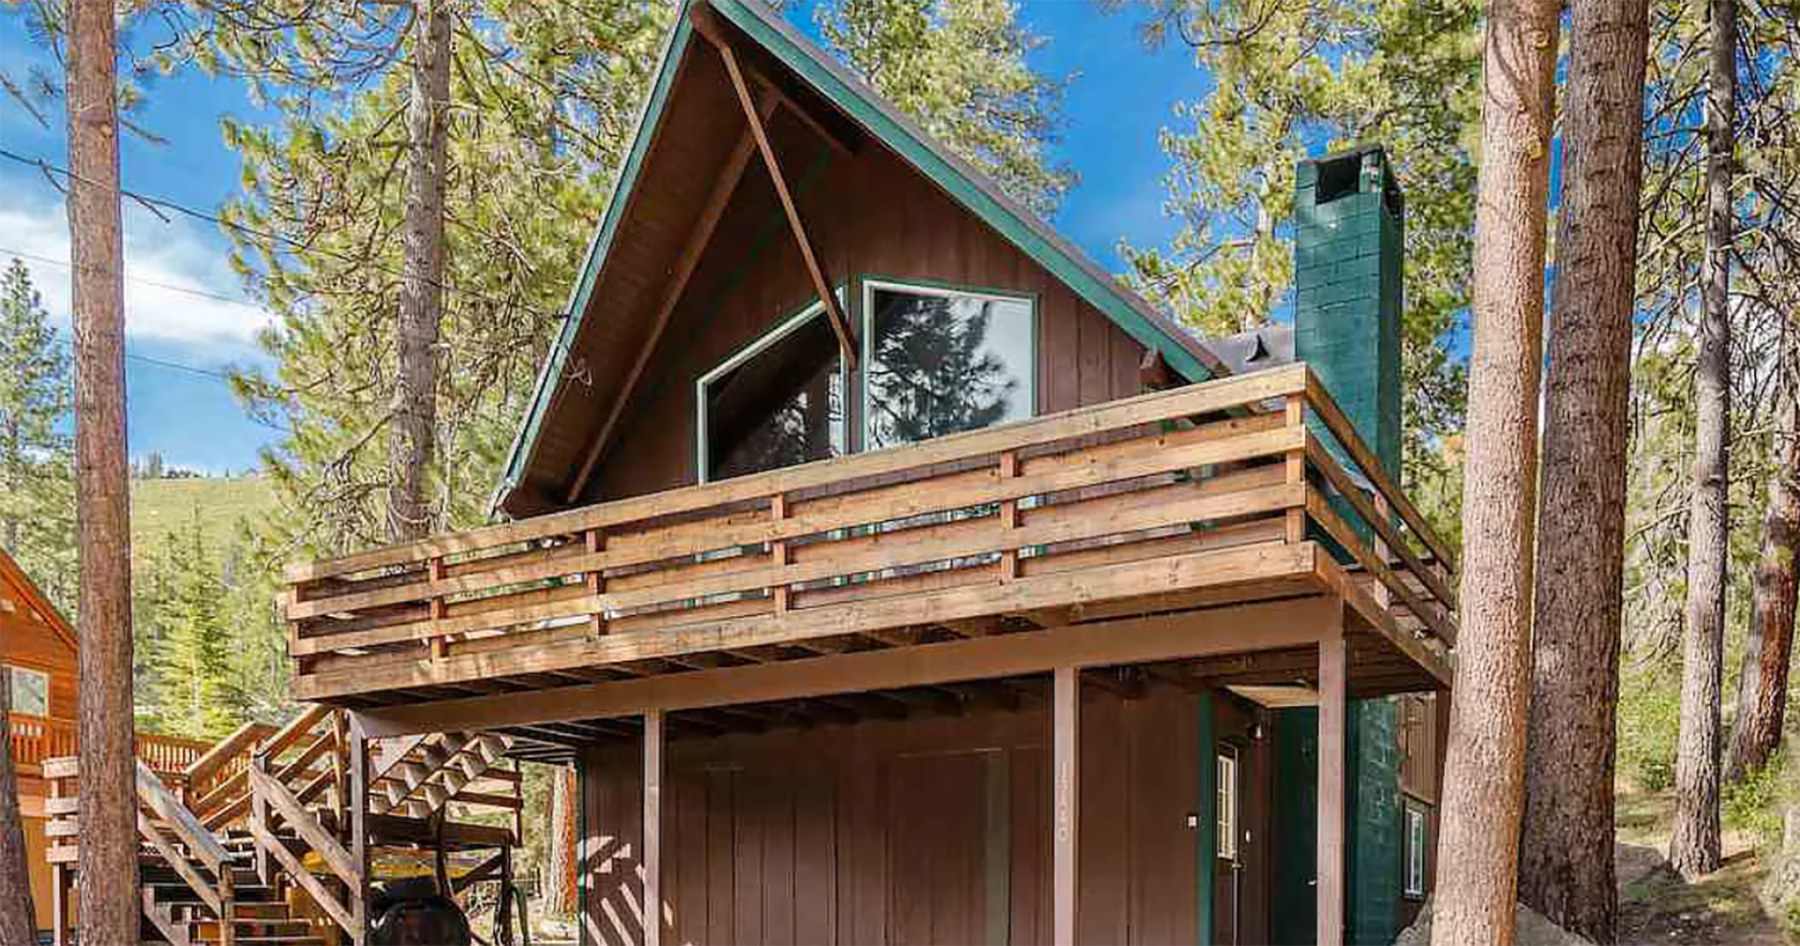 Spend your summer lakeside with three bedrooms and a giant deck